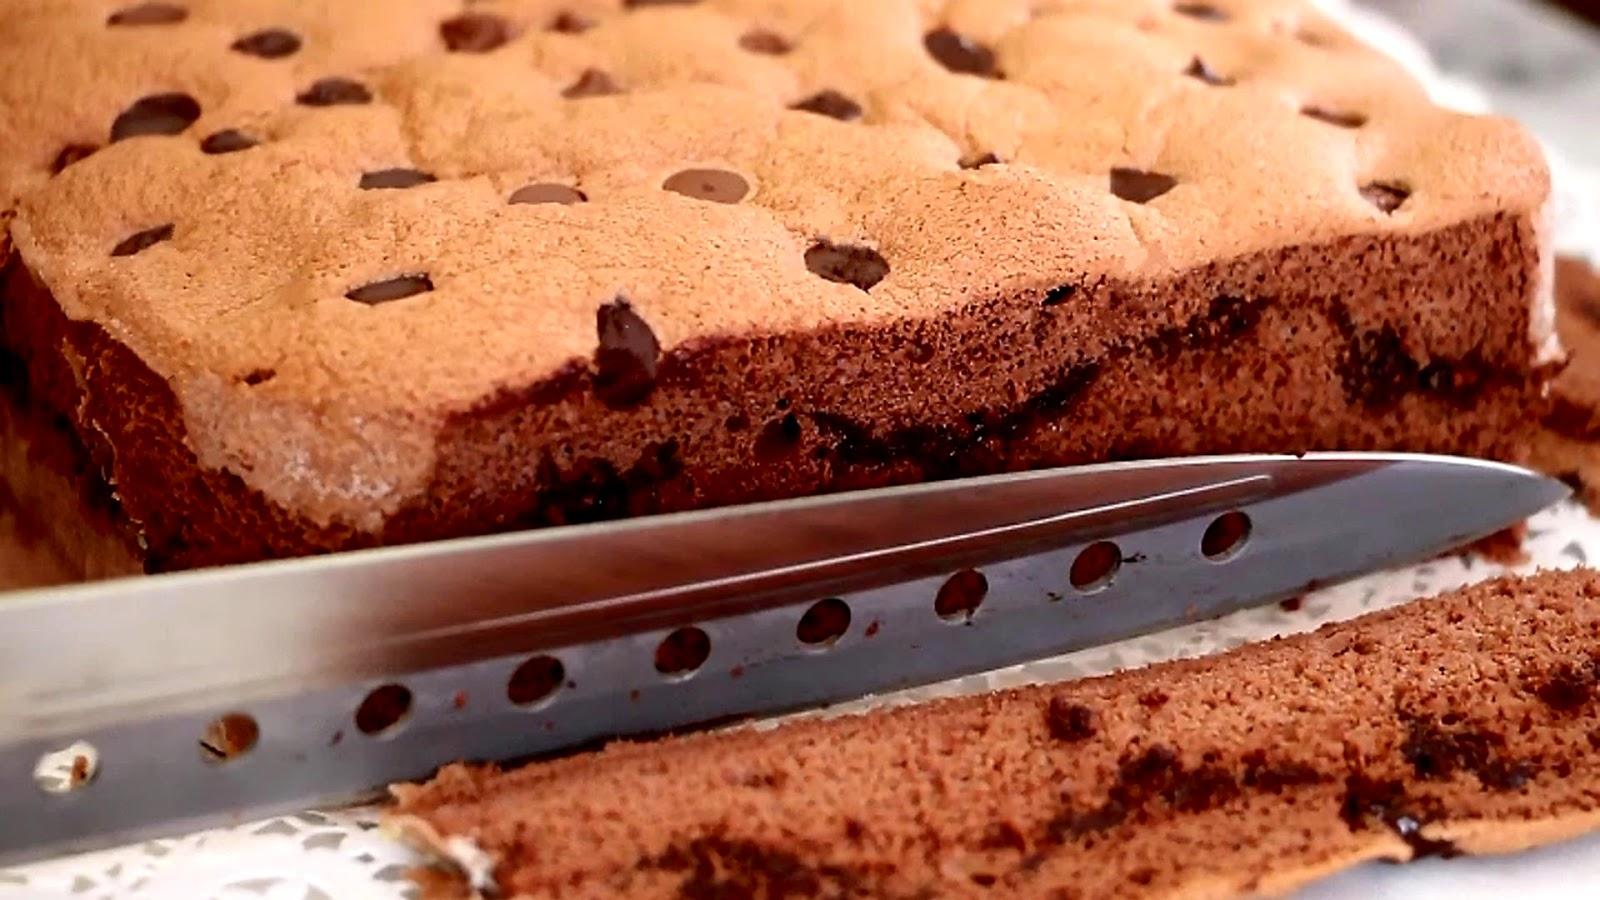 Josephine s recipes chocolate chip sponge cake 古早味巧克力棉花蛋糕